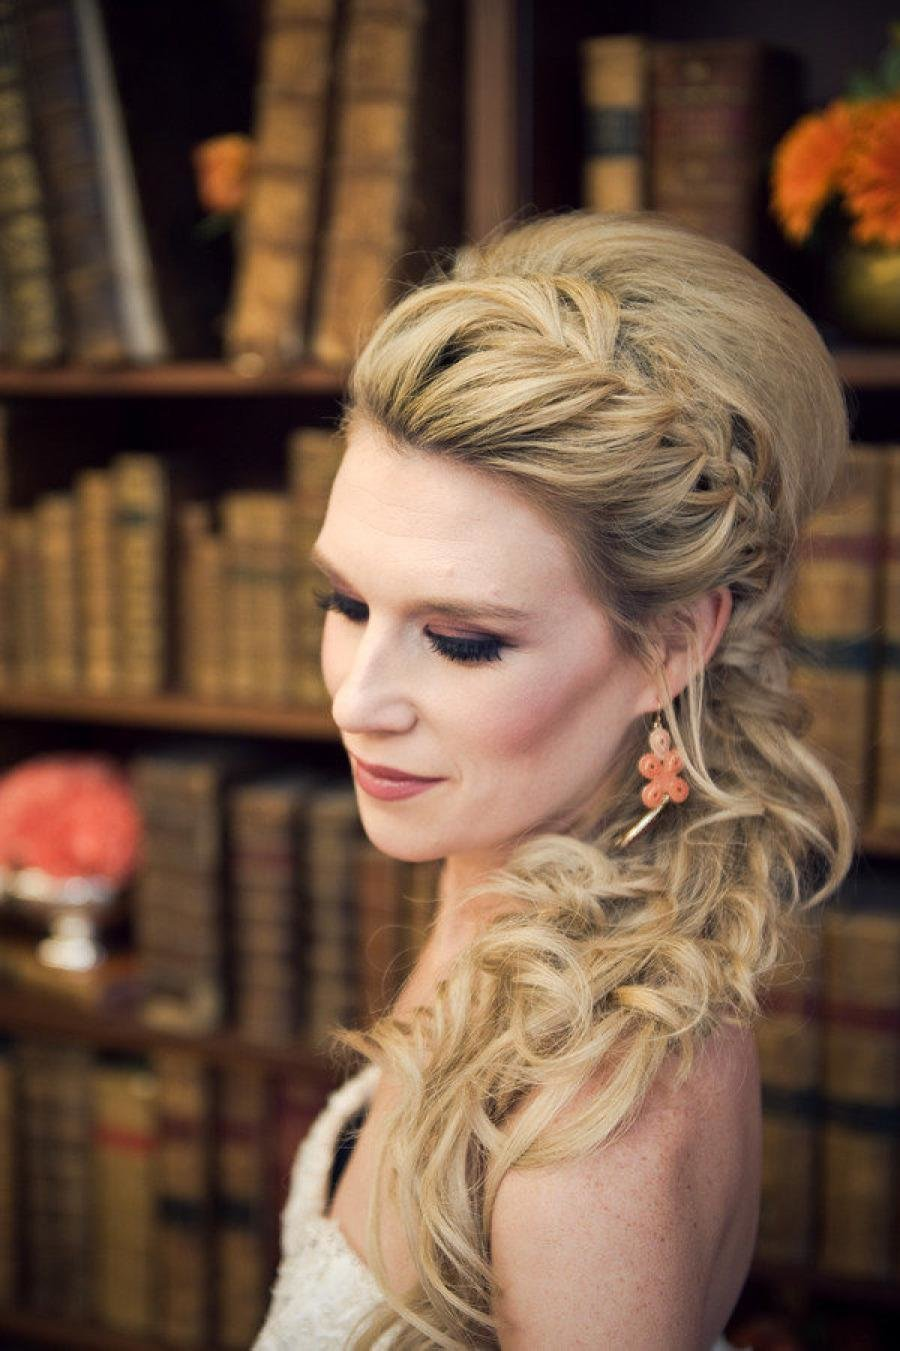 The Best 19 Gorgeous Hairstyles For Your Wedding Day Weddbook Pictures